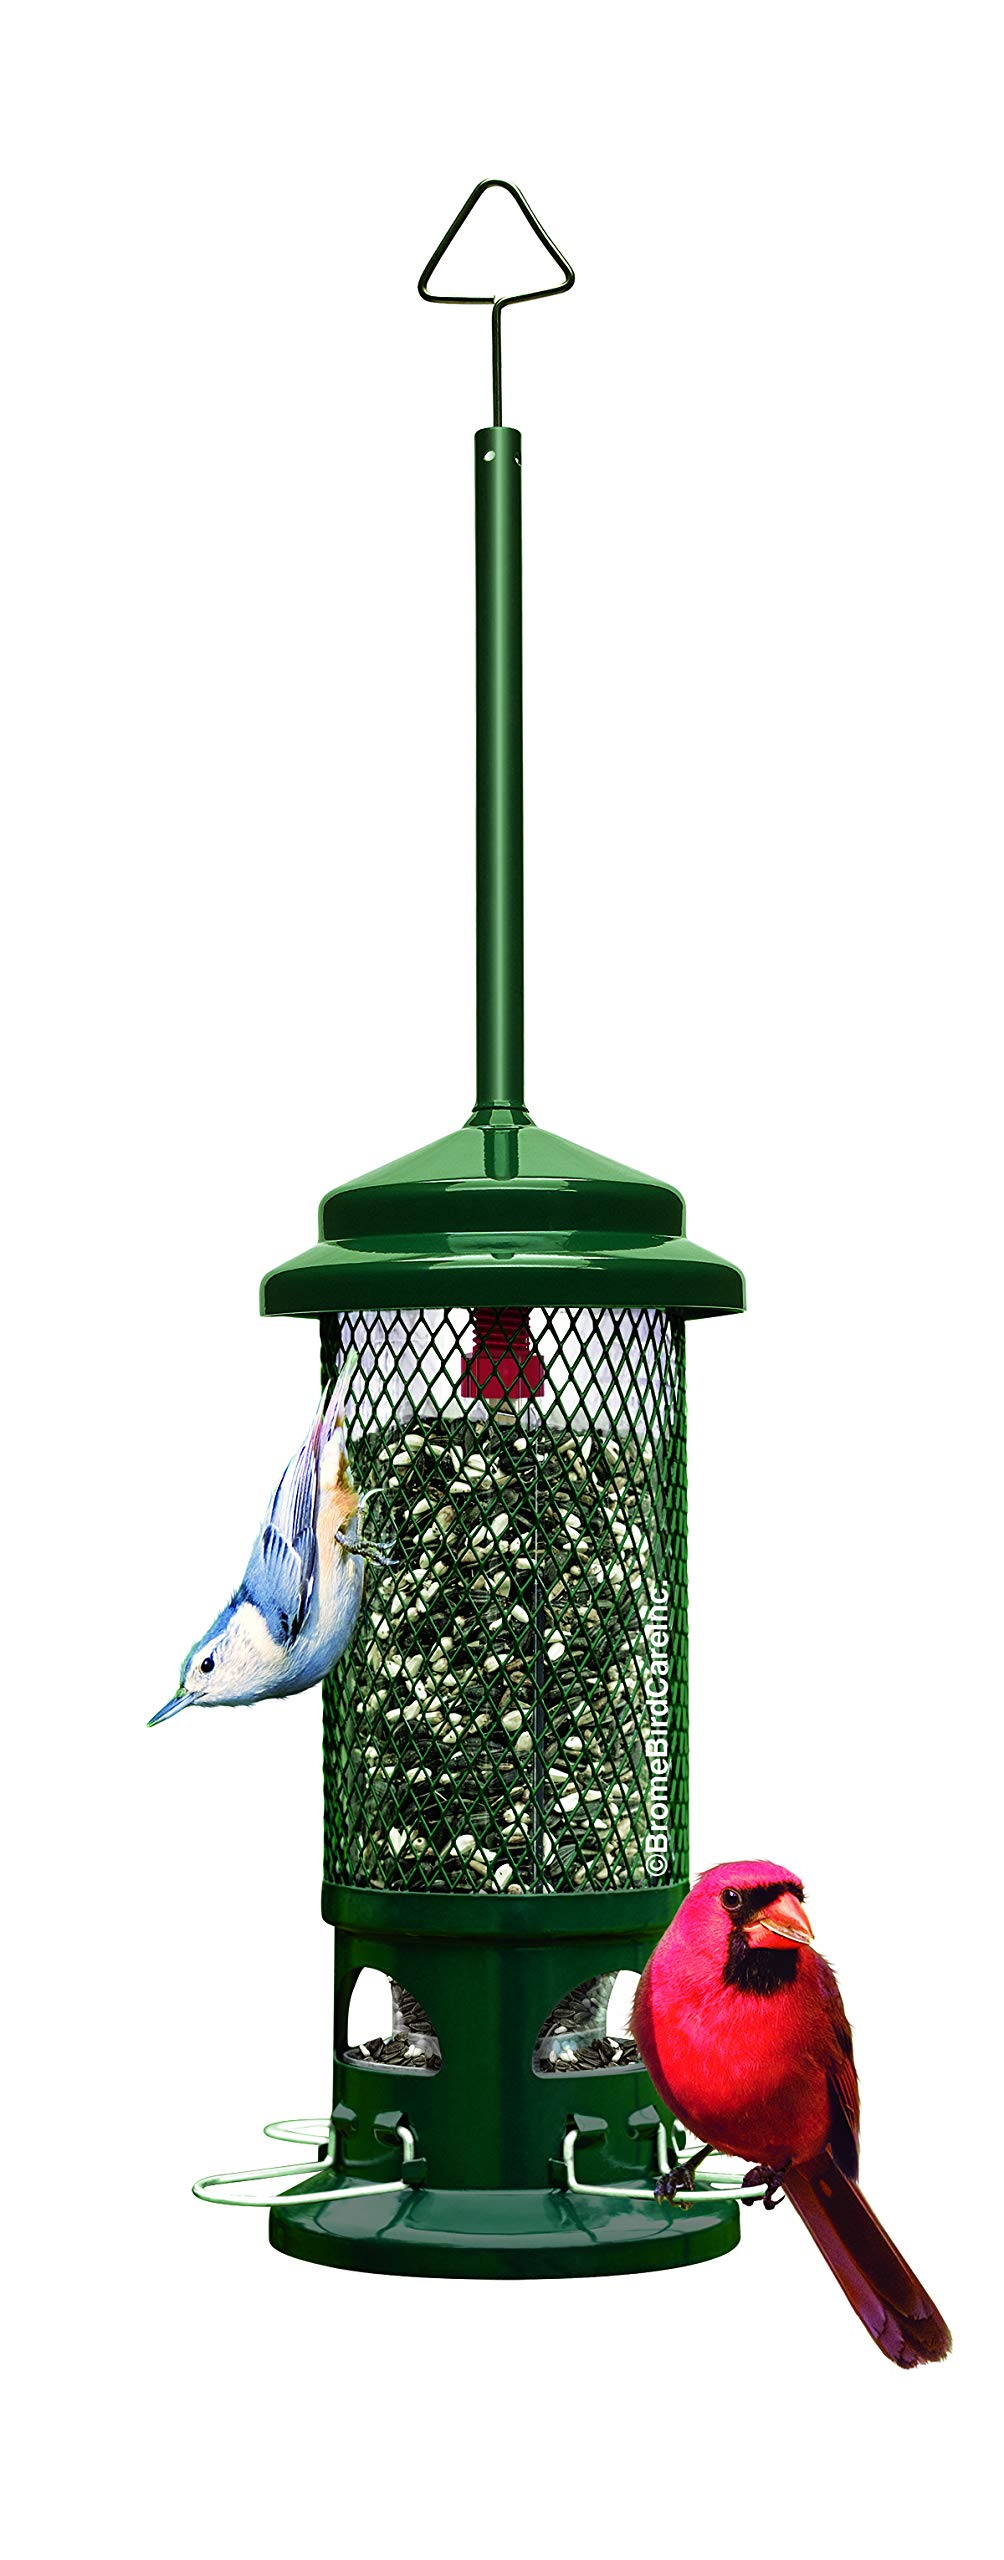 Brome 1057 Squirrel Buster Standard Wild Bird Feeder product image